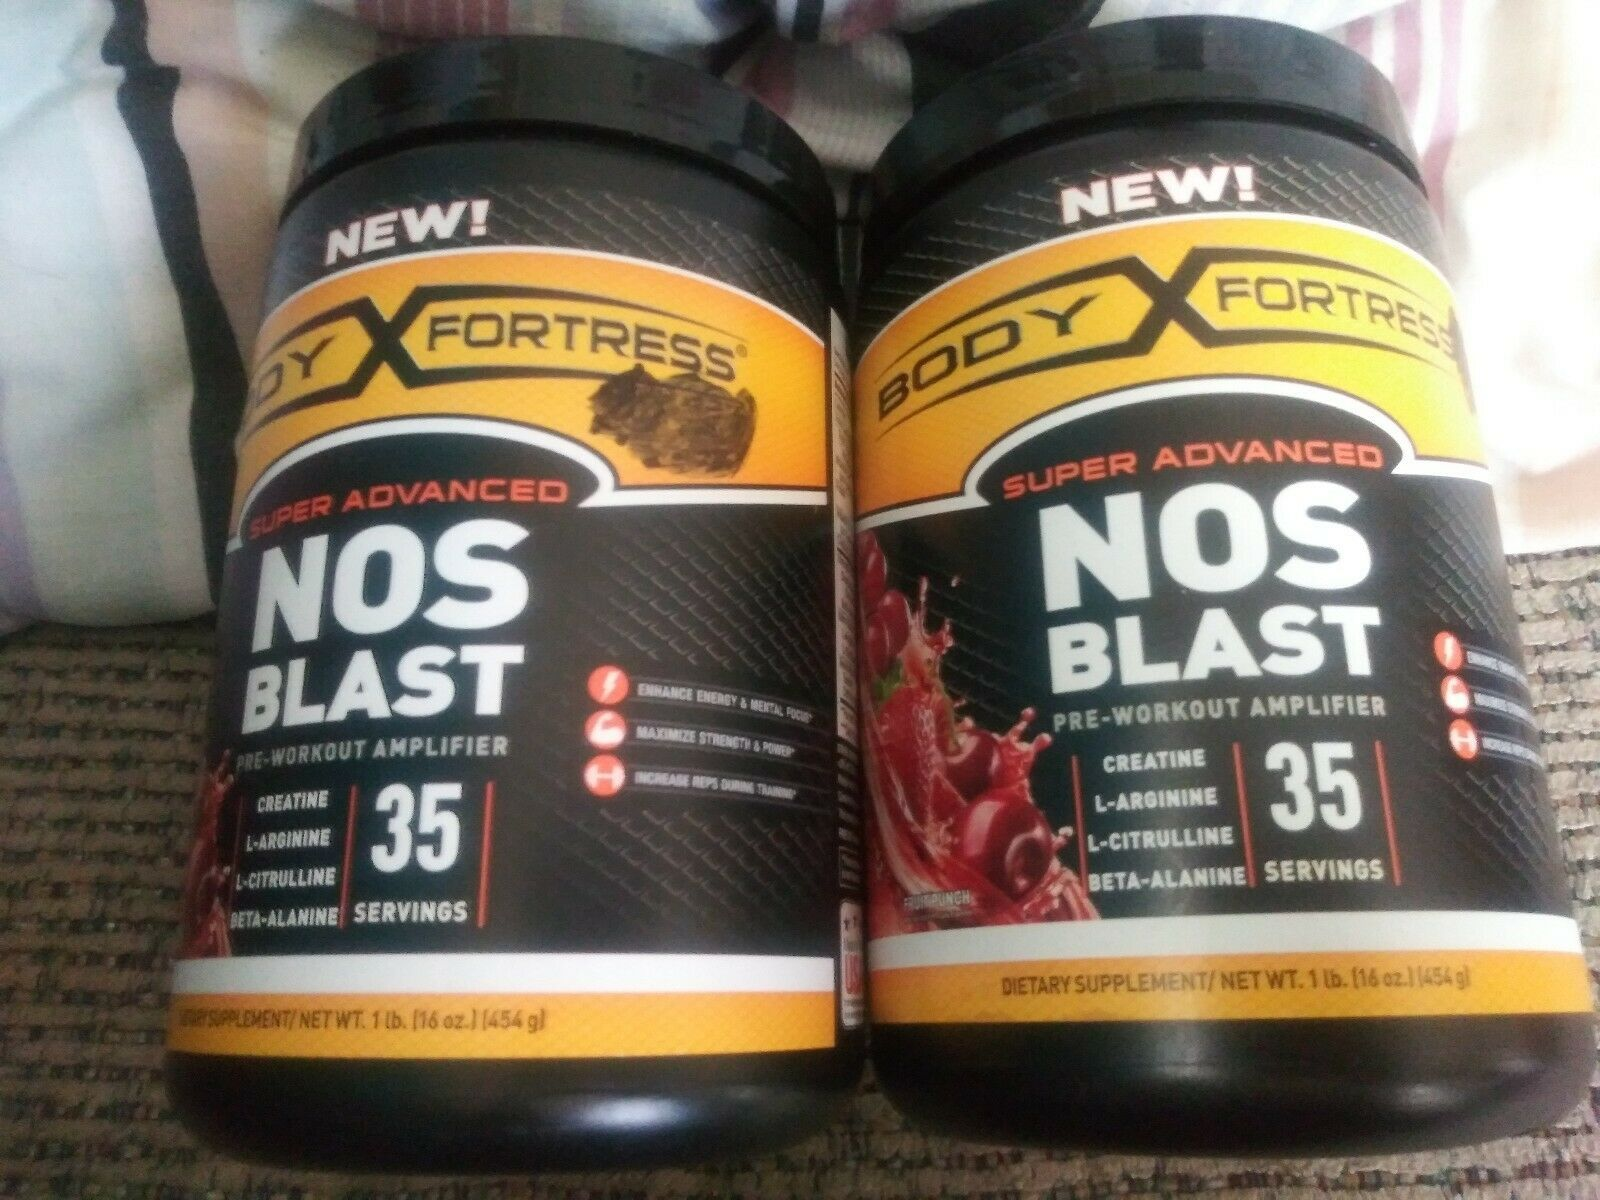 Primary image for 2x Body Fortress NOS Blast Pre-Workout Amplifier Fruit Punch 1 lb Best By 06/19